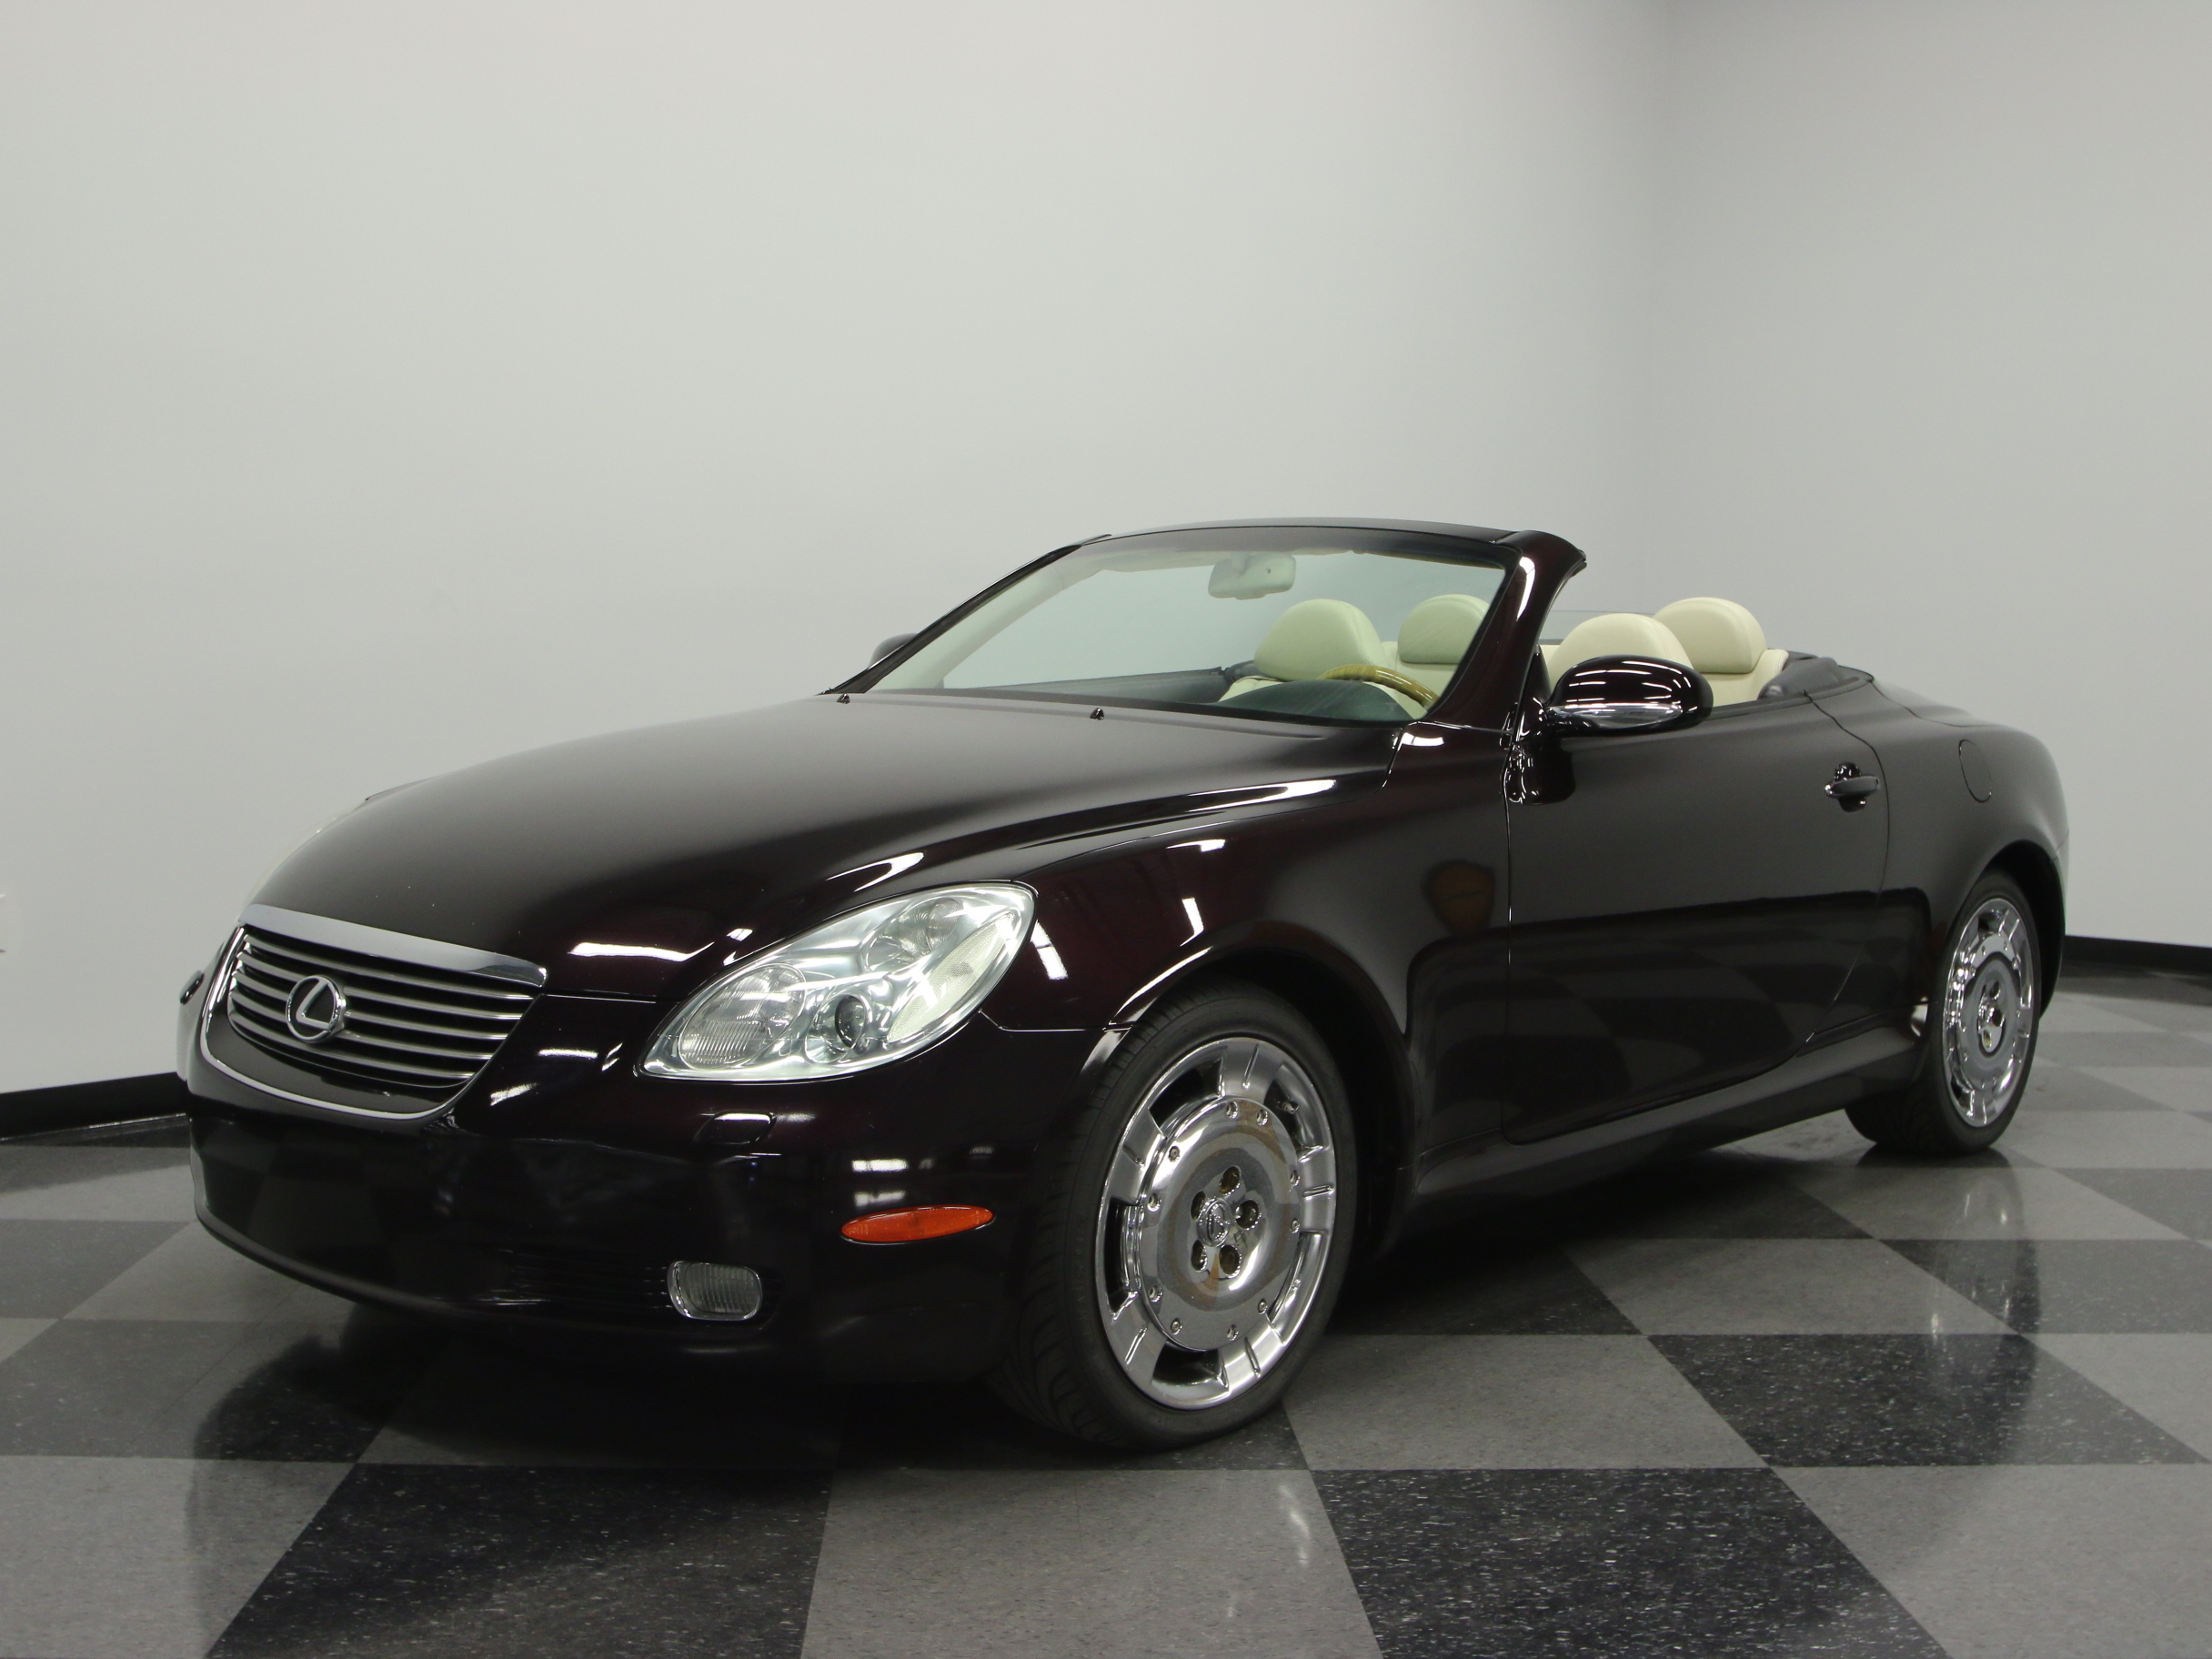 2002 lexus sc430 for sale 45828 mcg. Black Bedroom Furniture Sets. Home Design Ideas